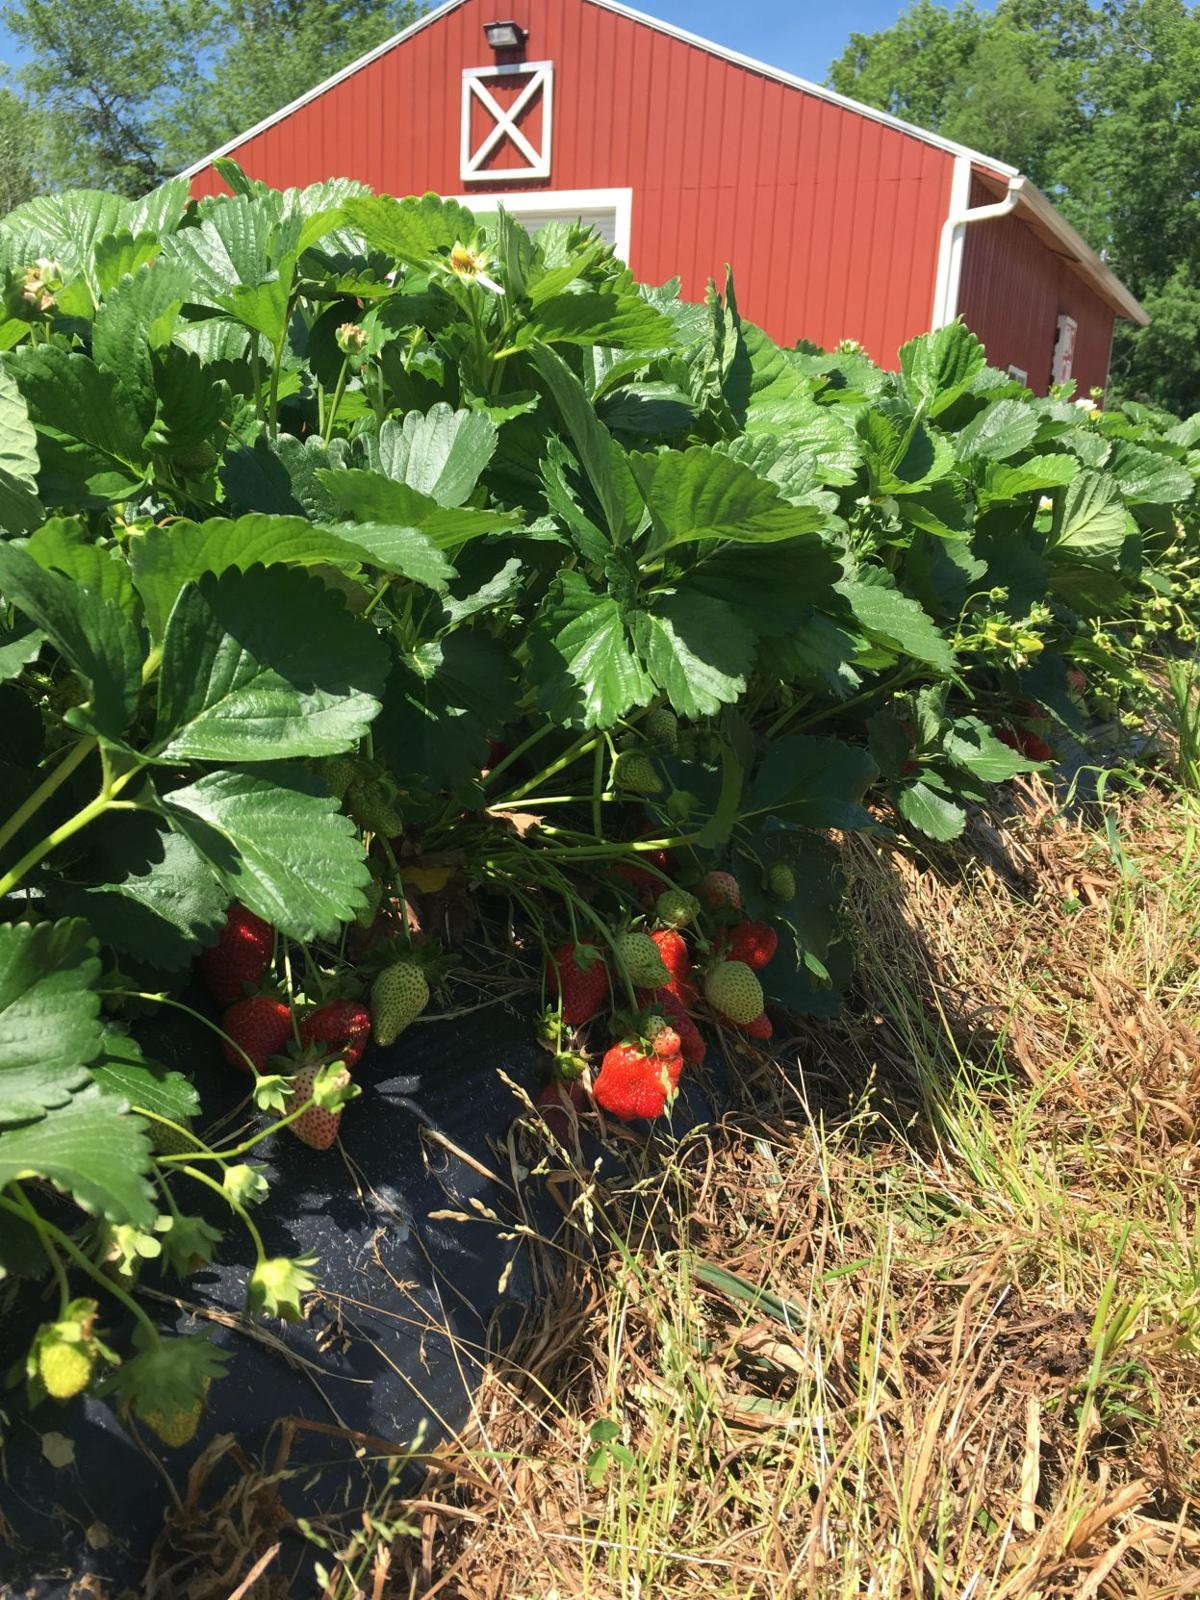 Strawberries ripe for the picking